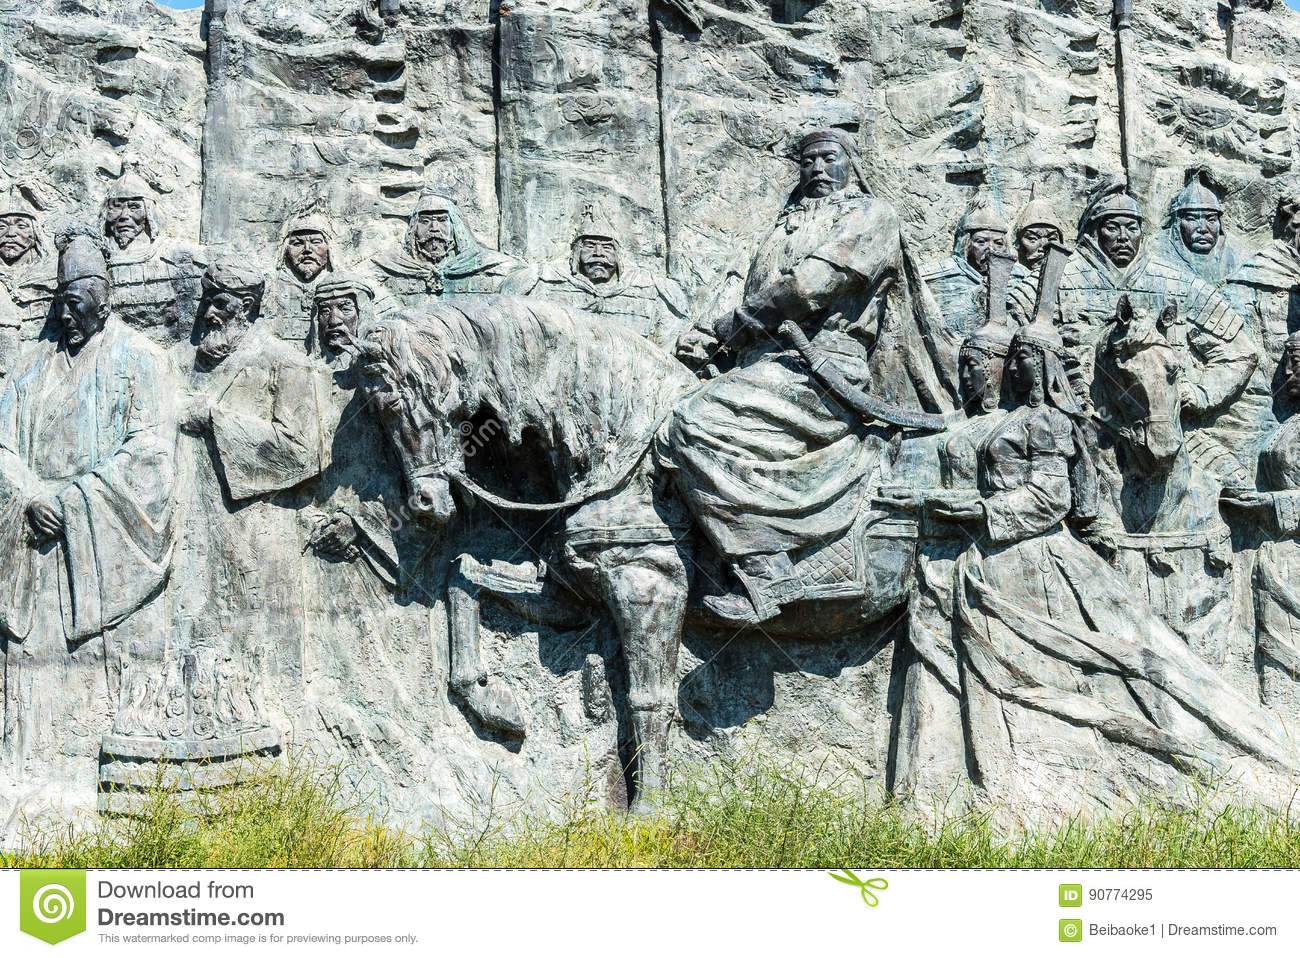 INNER MONGOLIA, CHINA - Aug 10 2015: Relief at Site of Xanadu (World Heritage site). a famous historic site in Zhenglan Banner, X